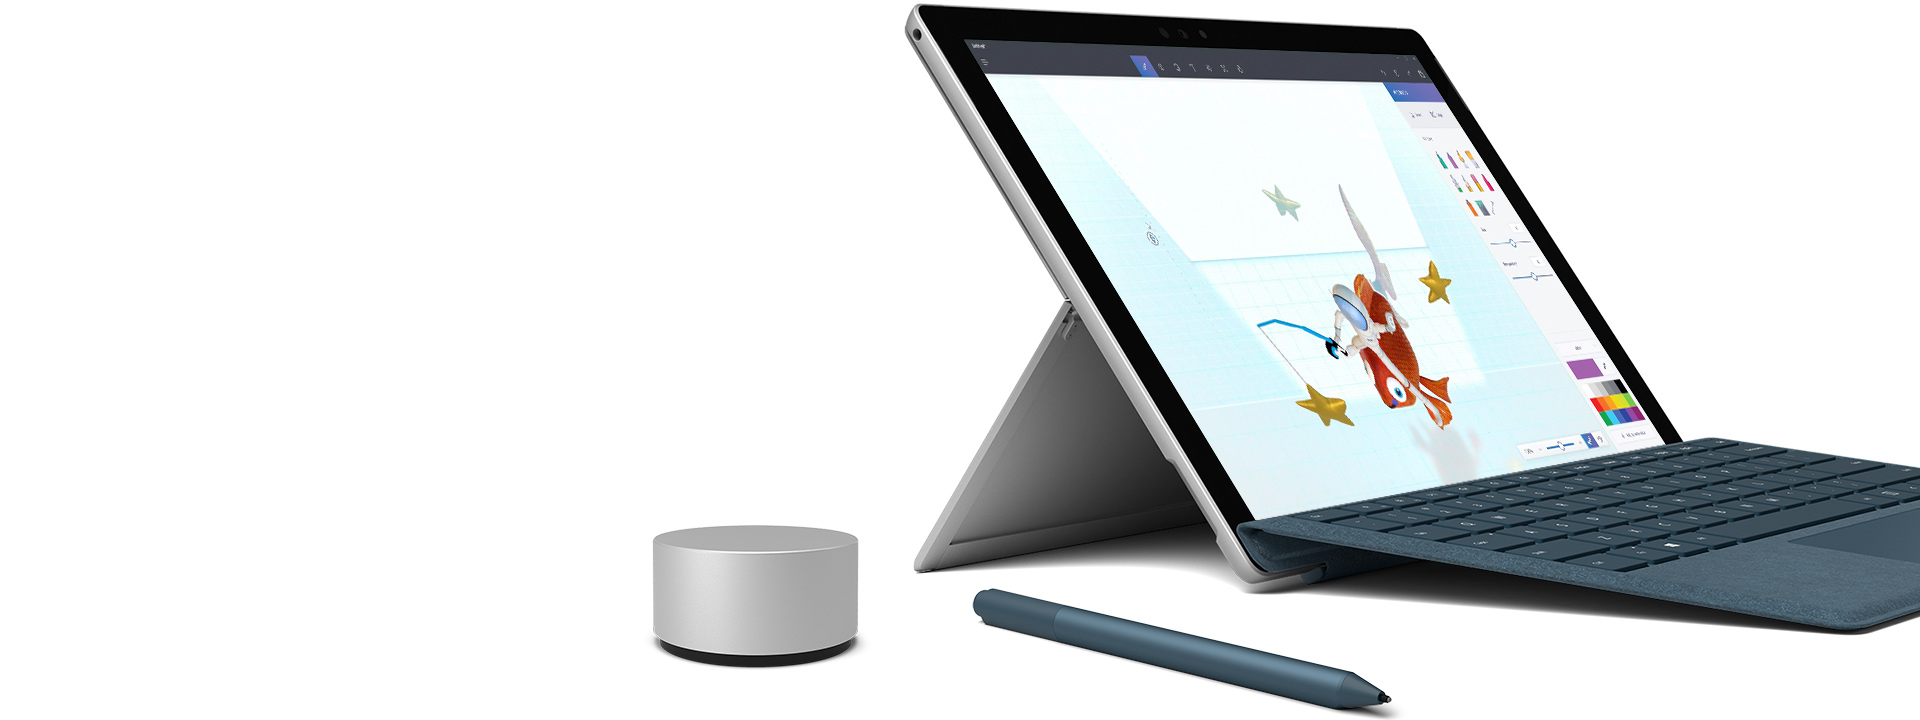 Surface Pro im Laptop-Modus mit Surface Dial, -Stift und Type Cover.